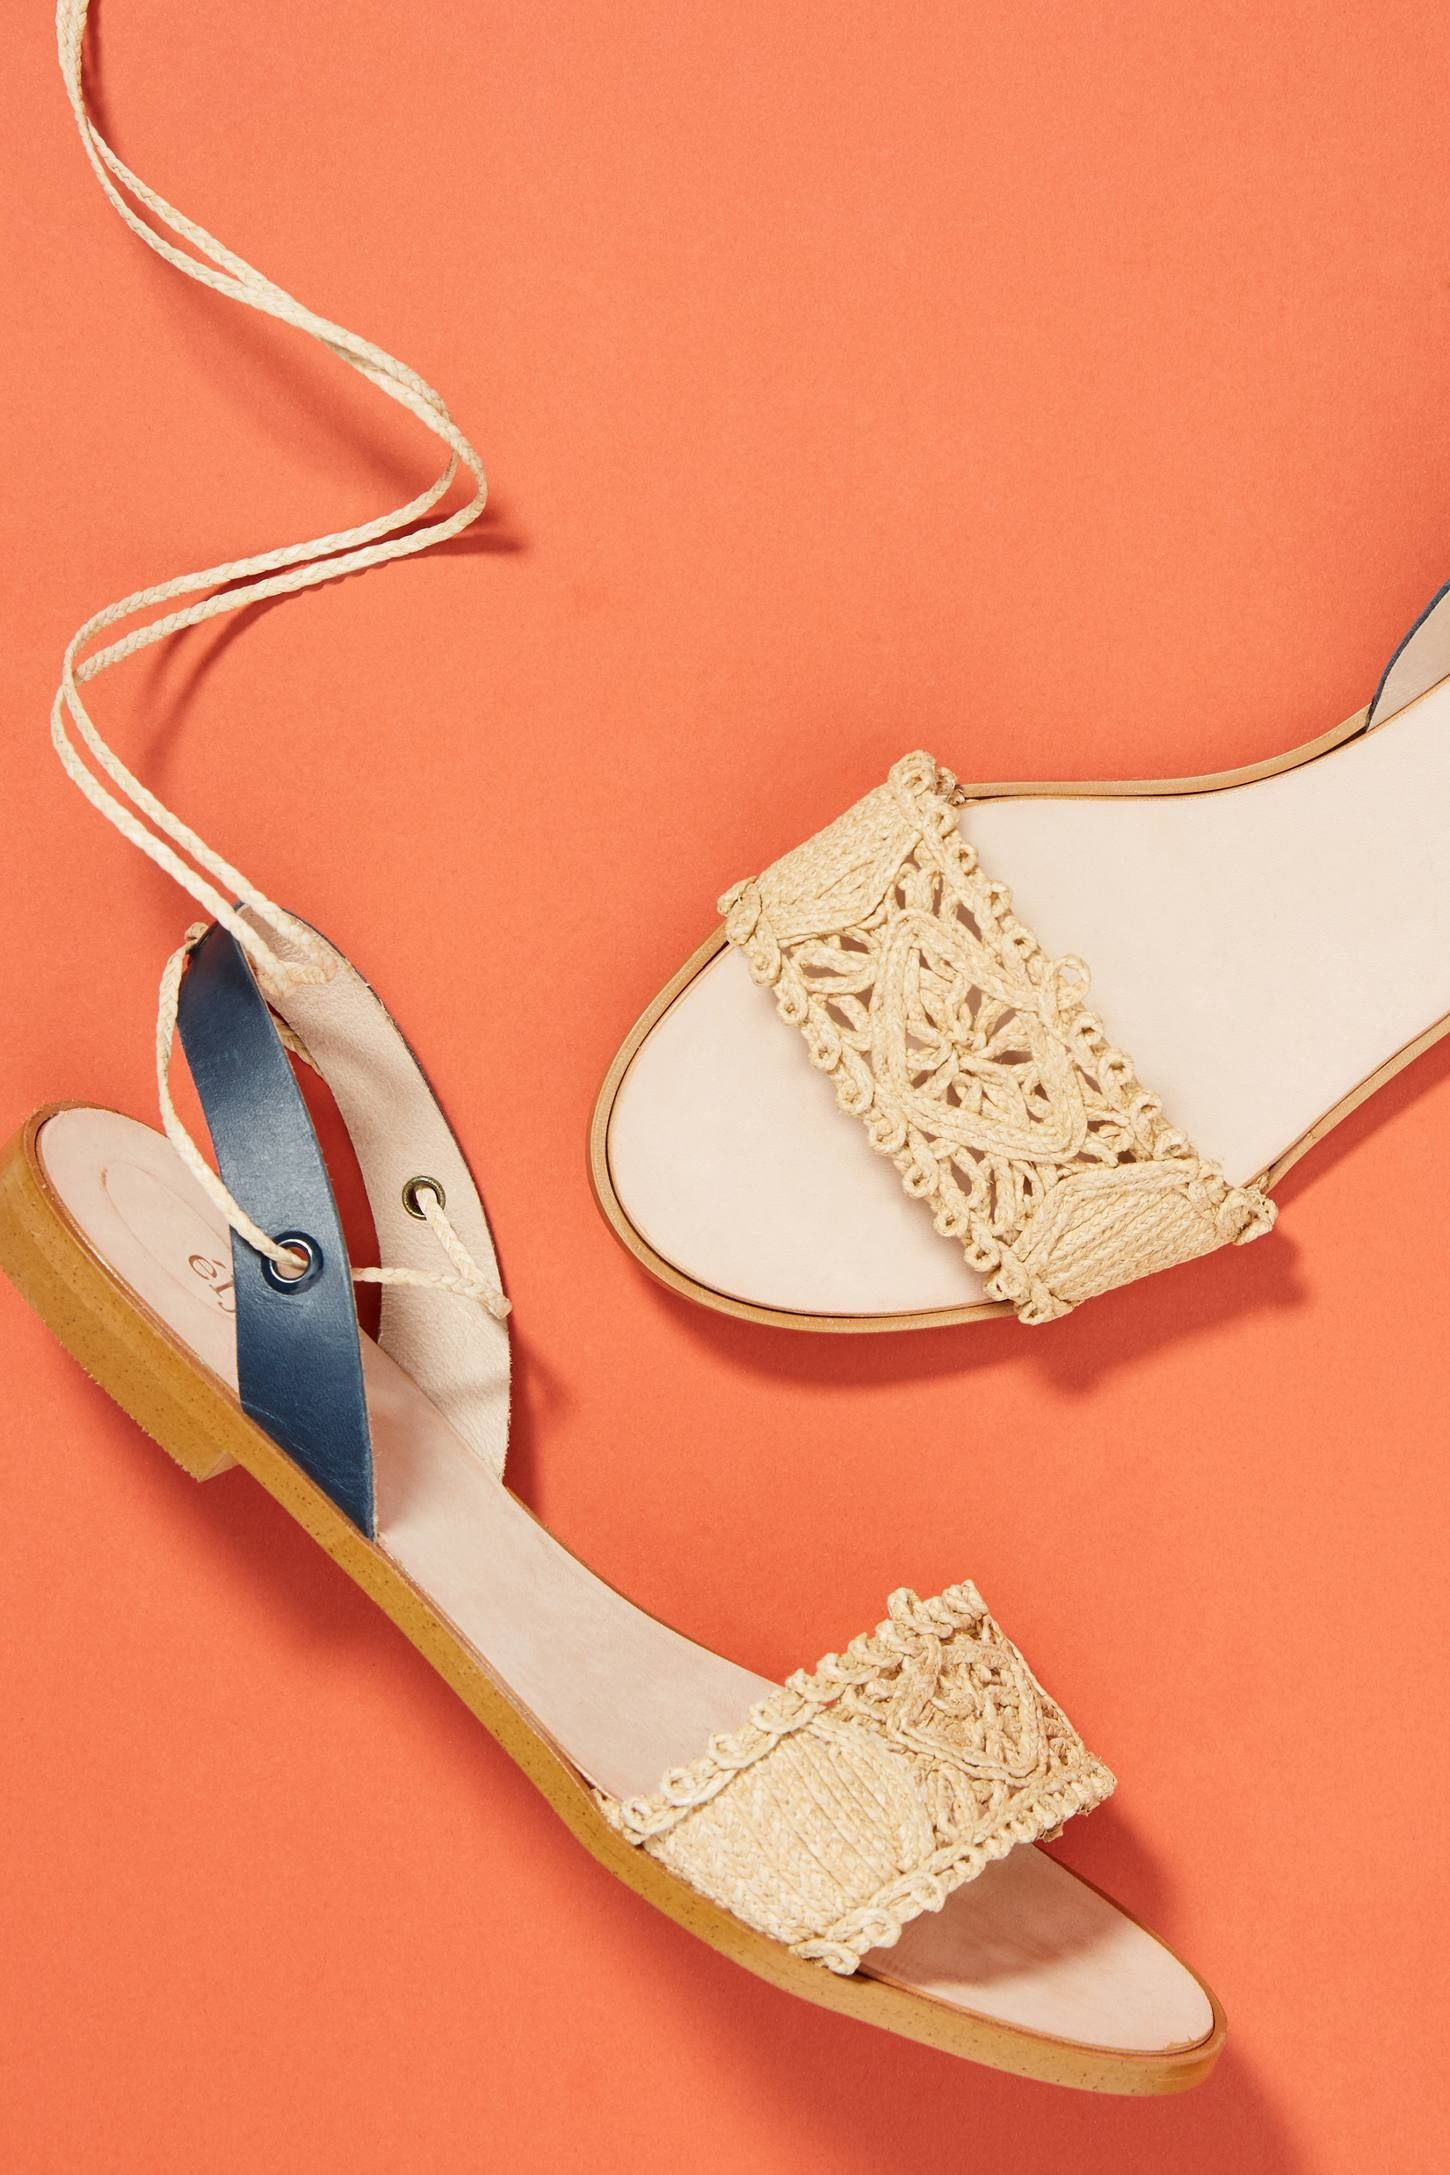 7a07a47e66 Shop the Elysess Tie-Up Sandals and more Anthropologie at Anthropologie  today. Read customer reviews, discover product details and more.